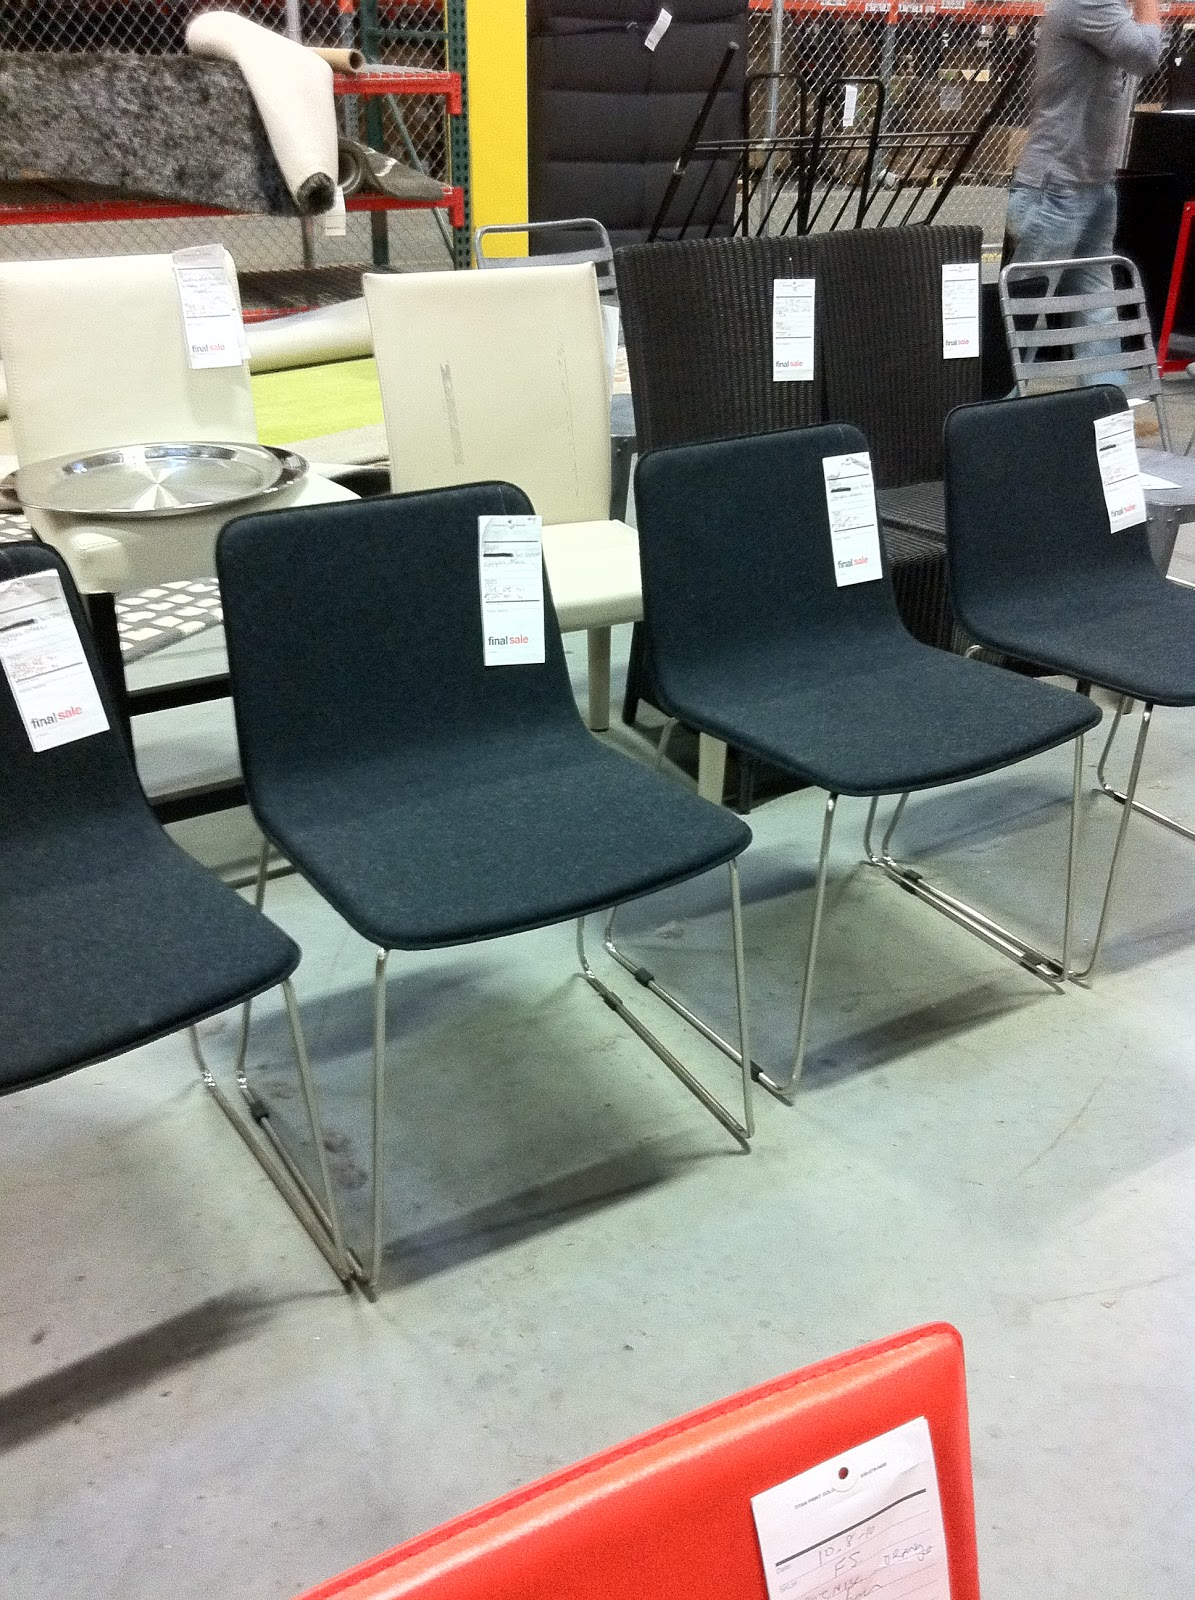 If i needed these chairs or had a client who needed them i would have snatched them up there were 4 of them at about 40 each they are called the jasper